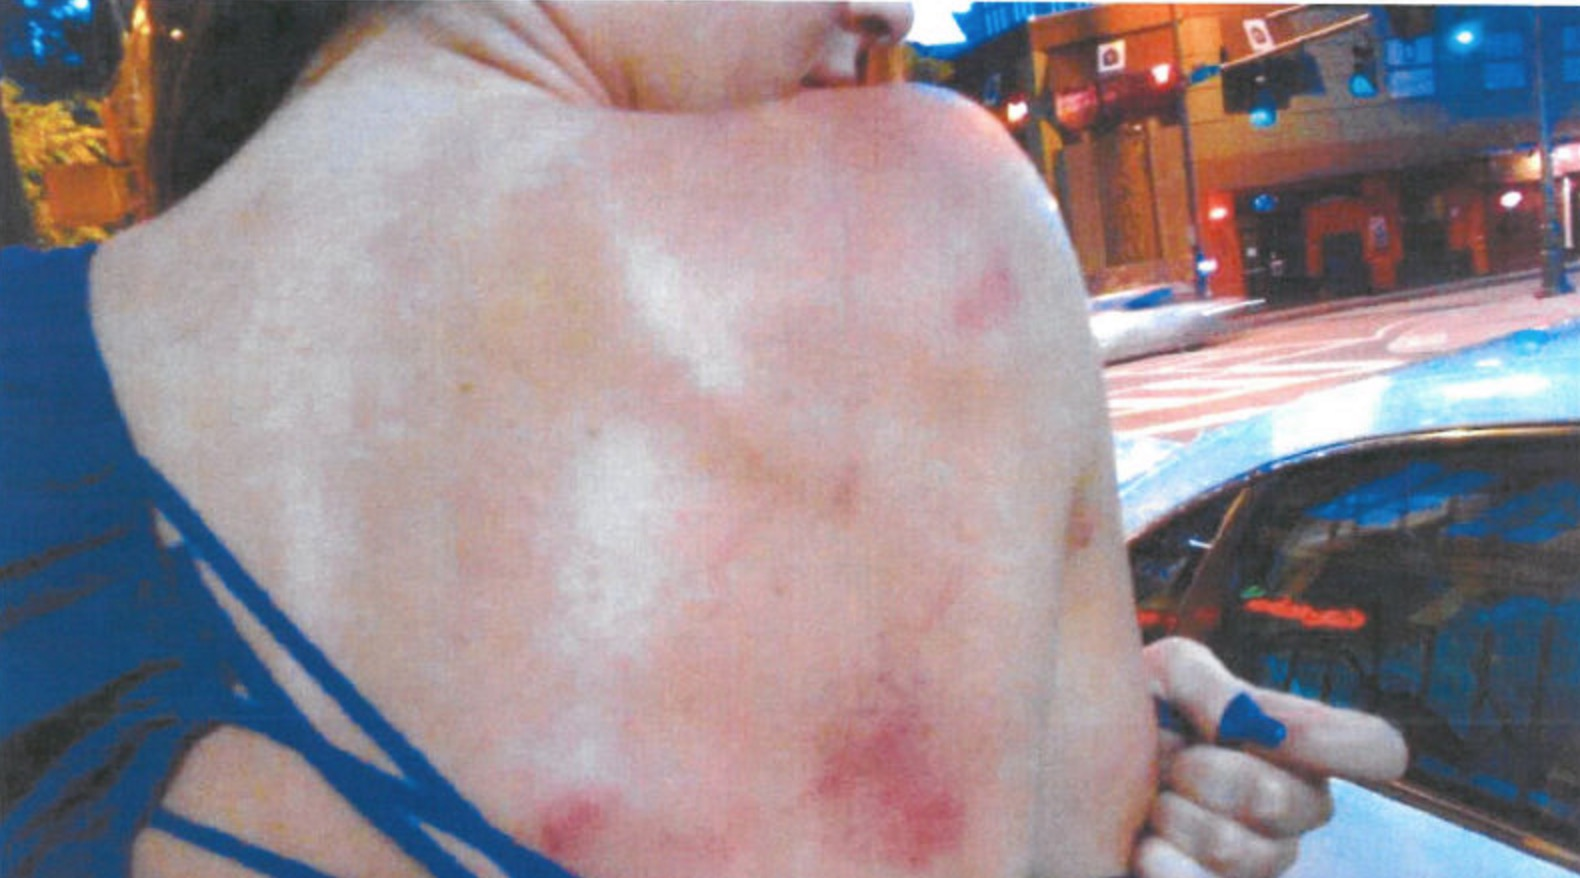 Total Pro Sports Photos Released of the Bruises Greg Hardy